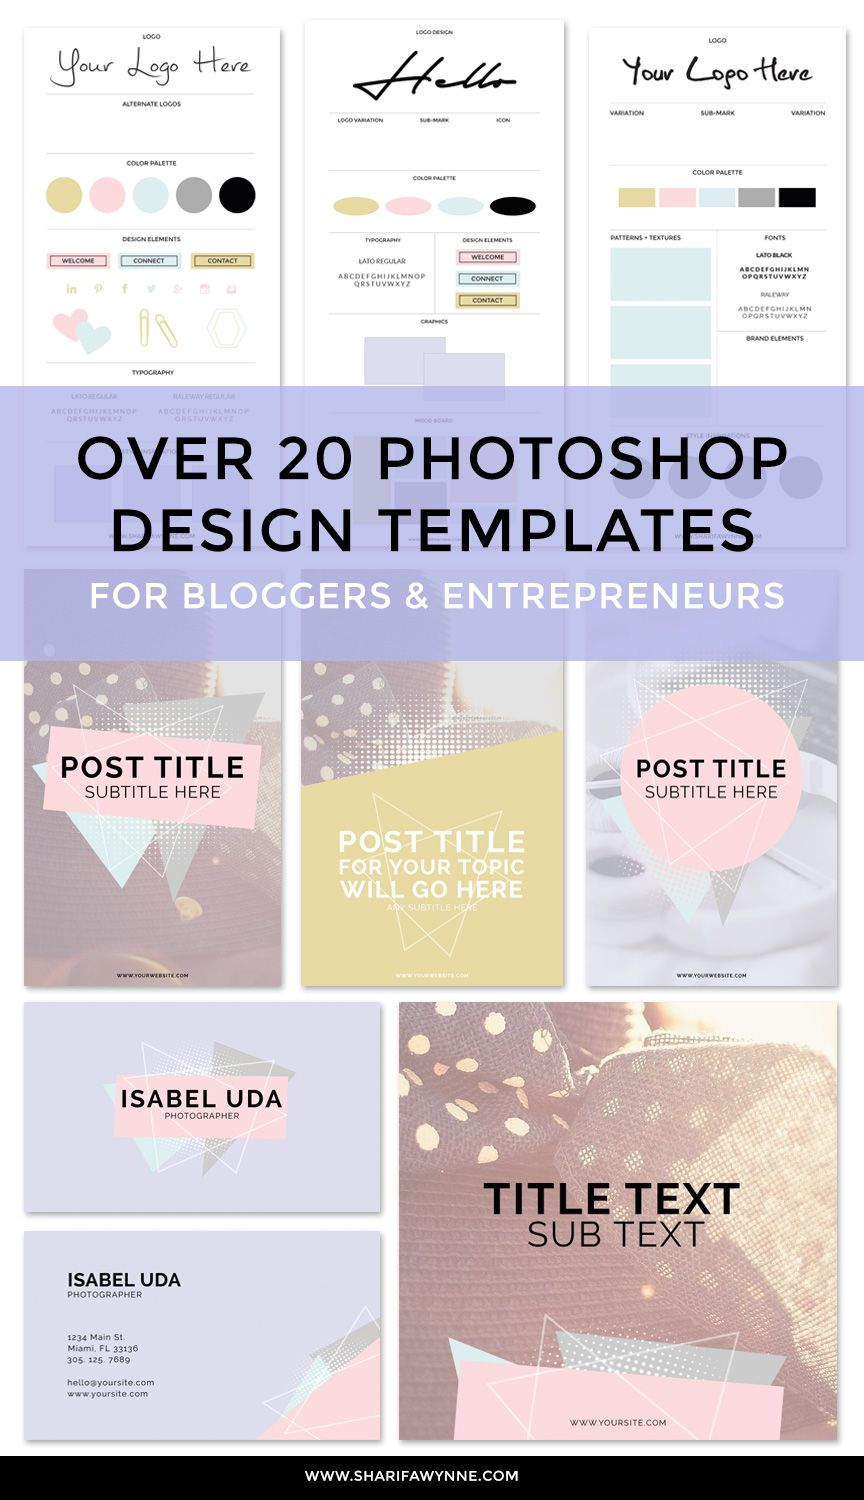 Branding Kit Version 1 - With over 20 Photoshop design templates ...